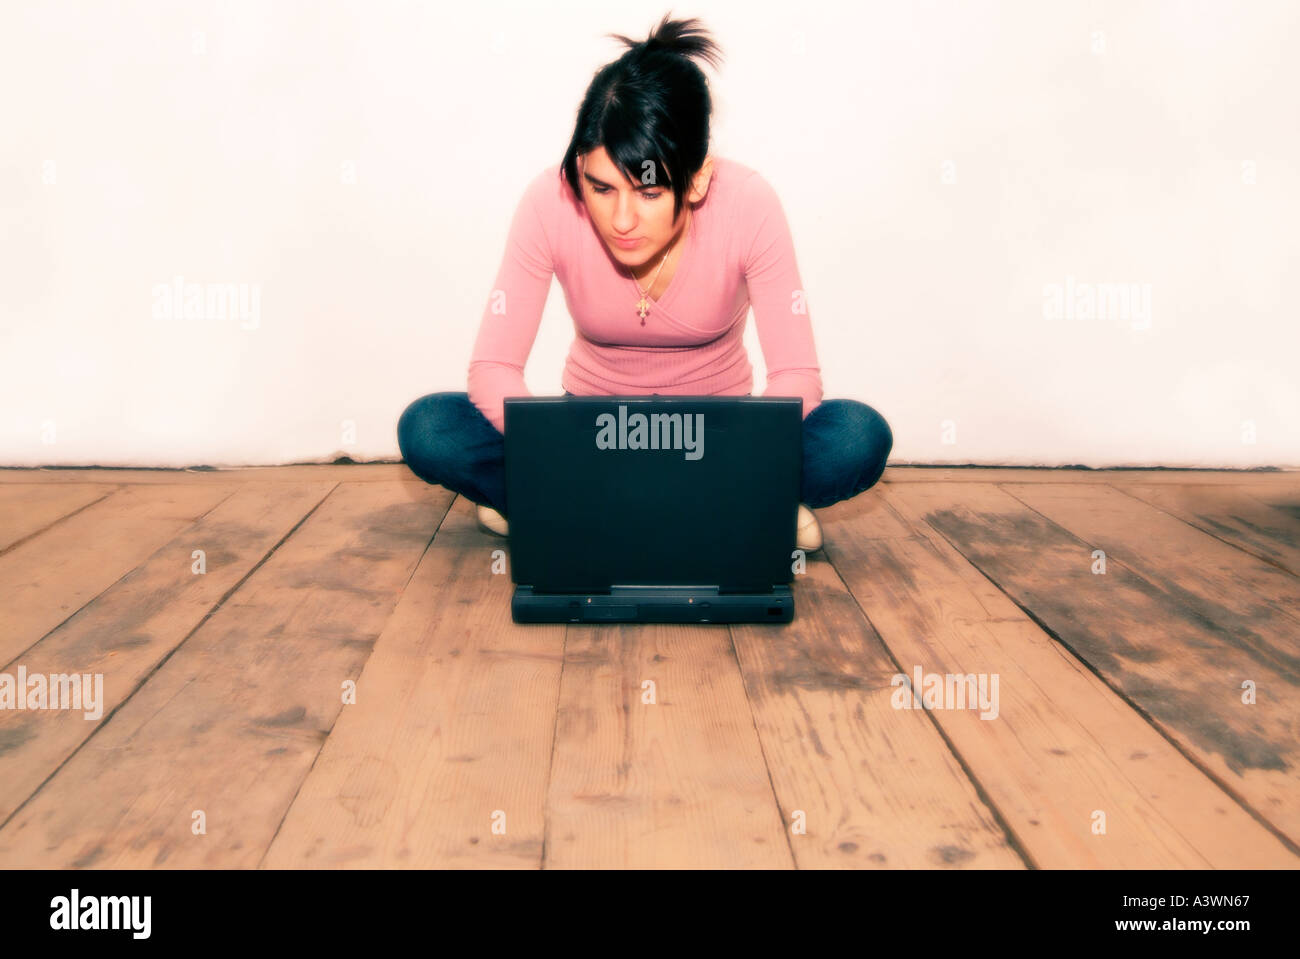 Woman Sat on Bare Wooden Floorboards Using a Laptop Stock Photo